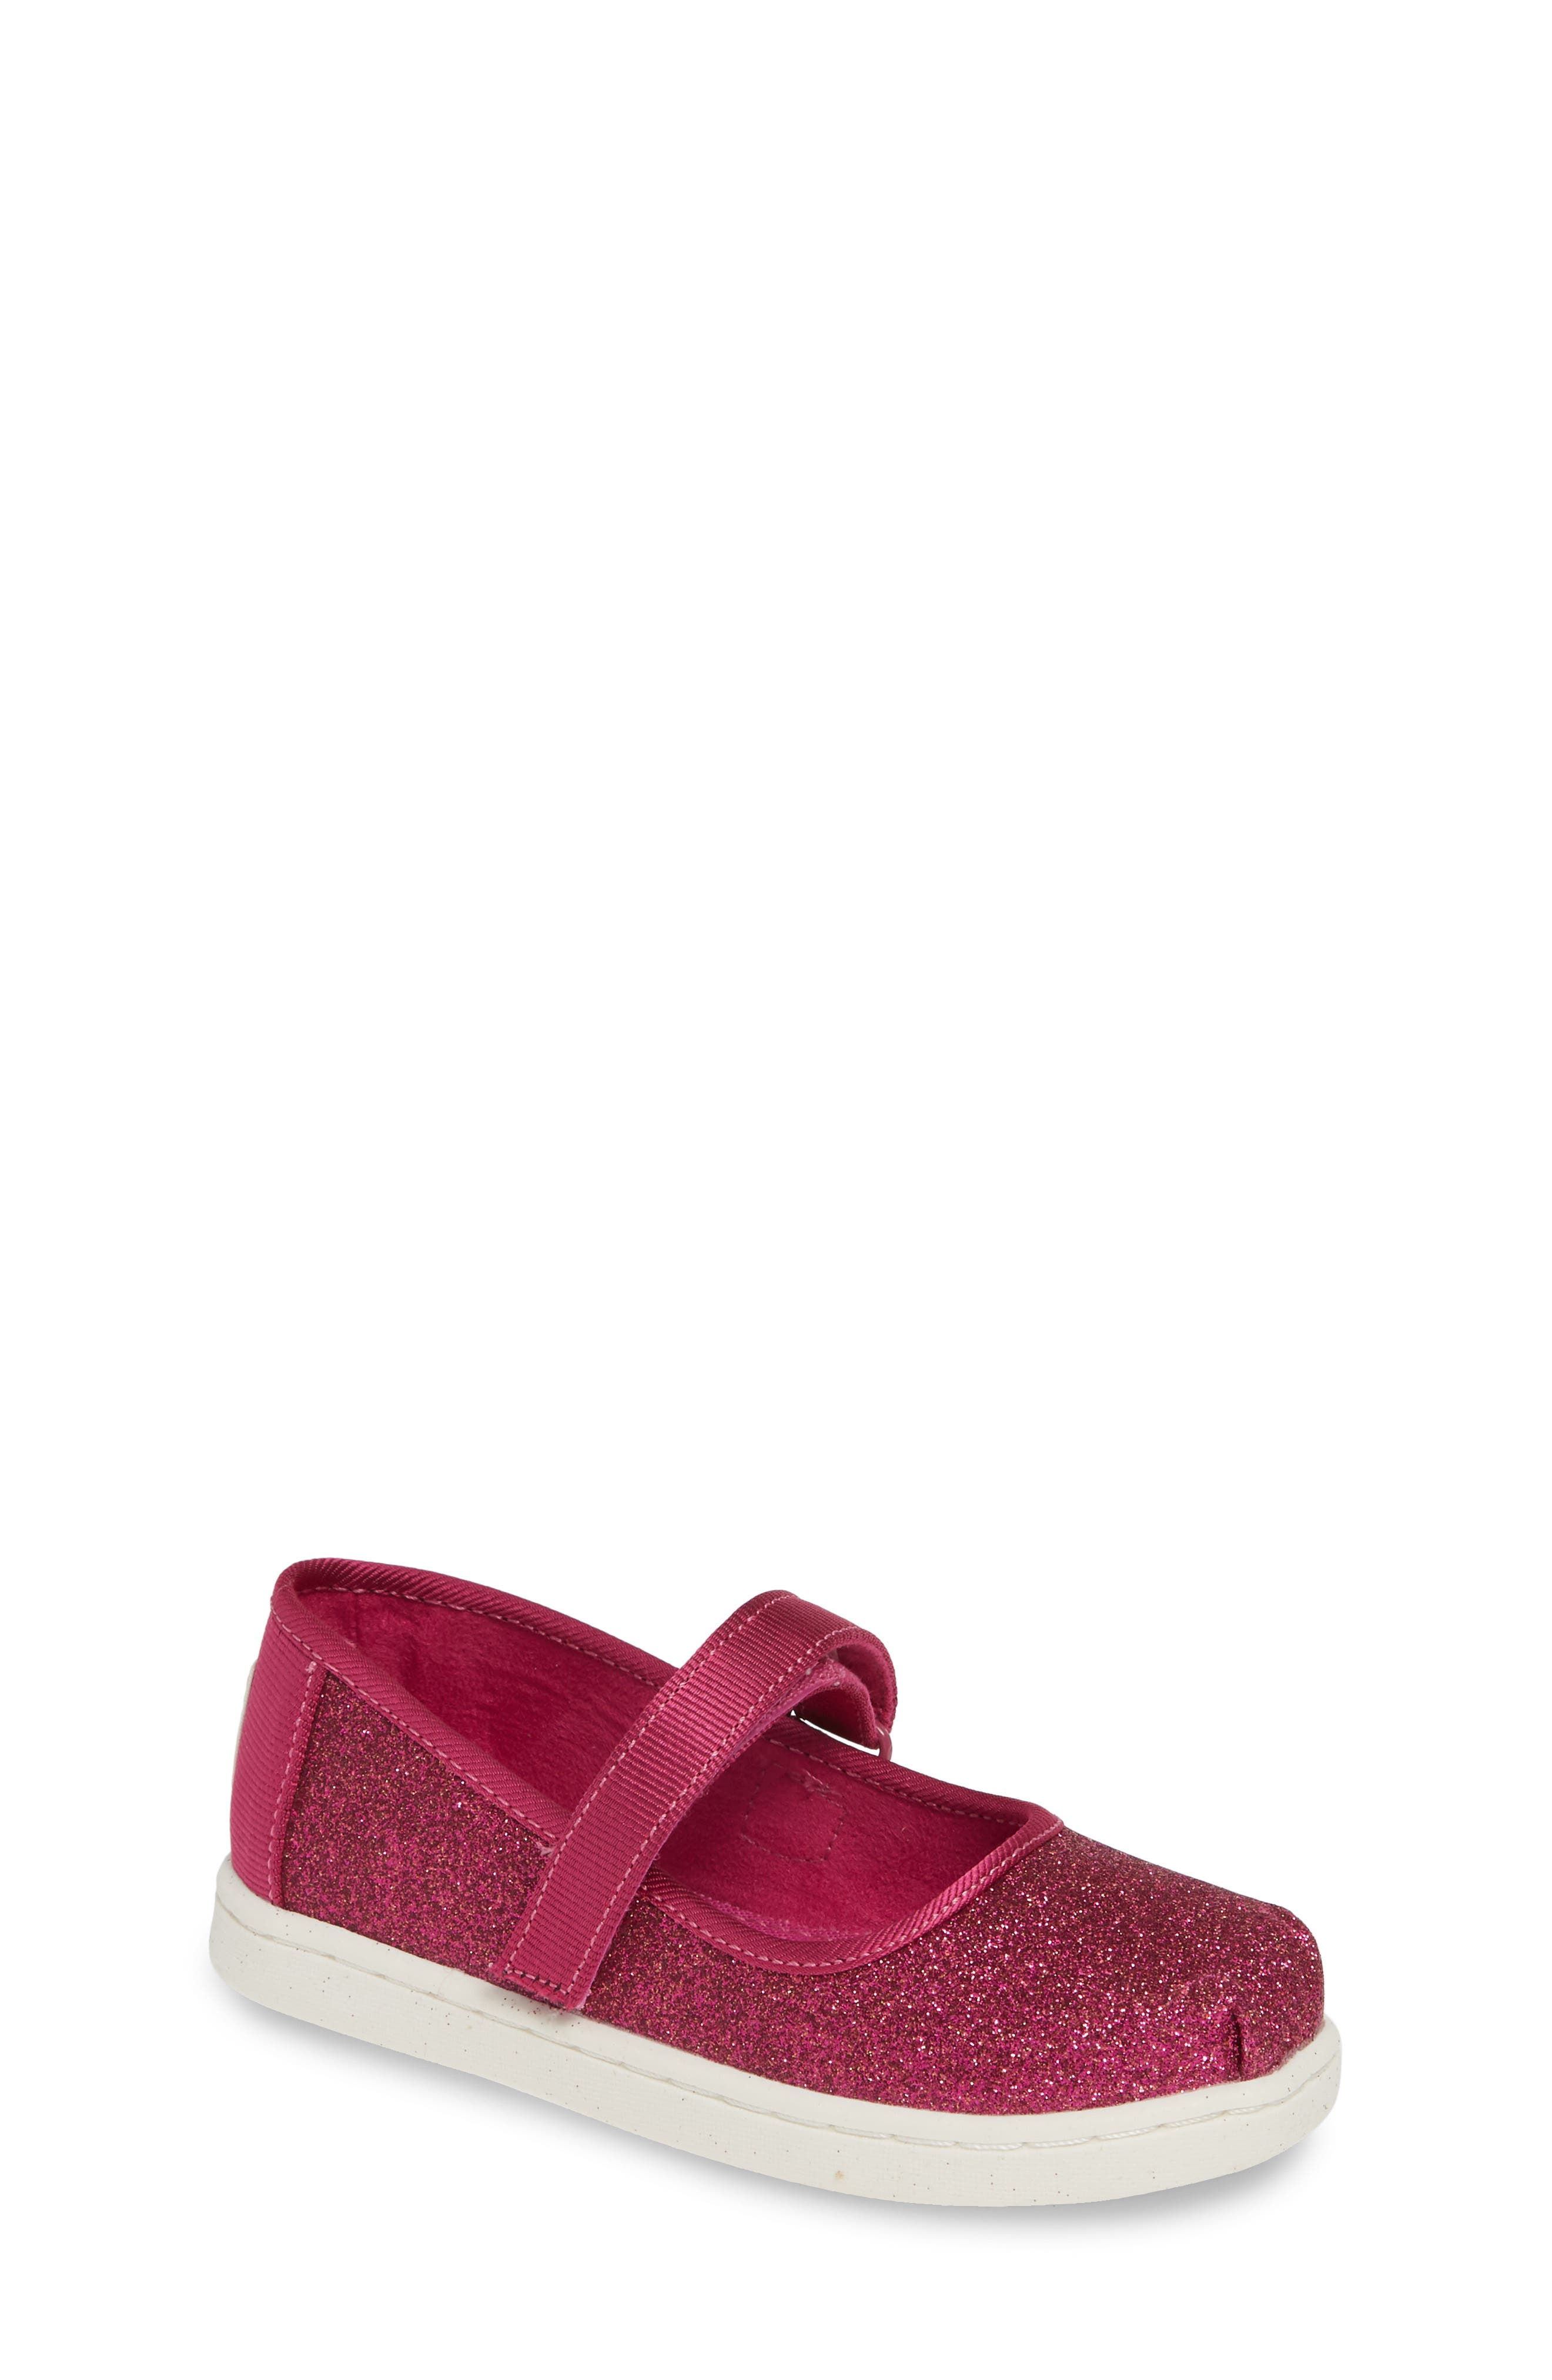 TOMS Mary Jane Sneaker, Main, color, PINK